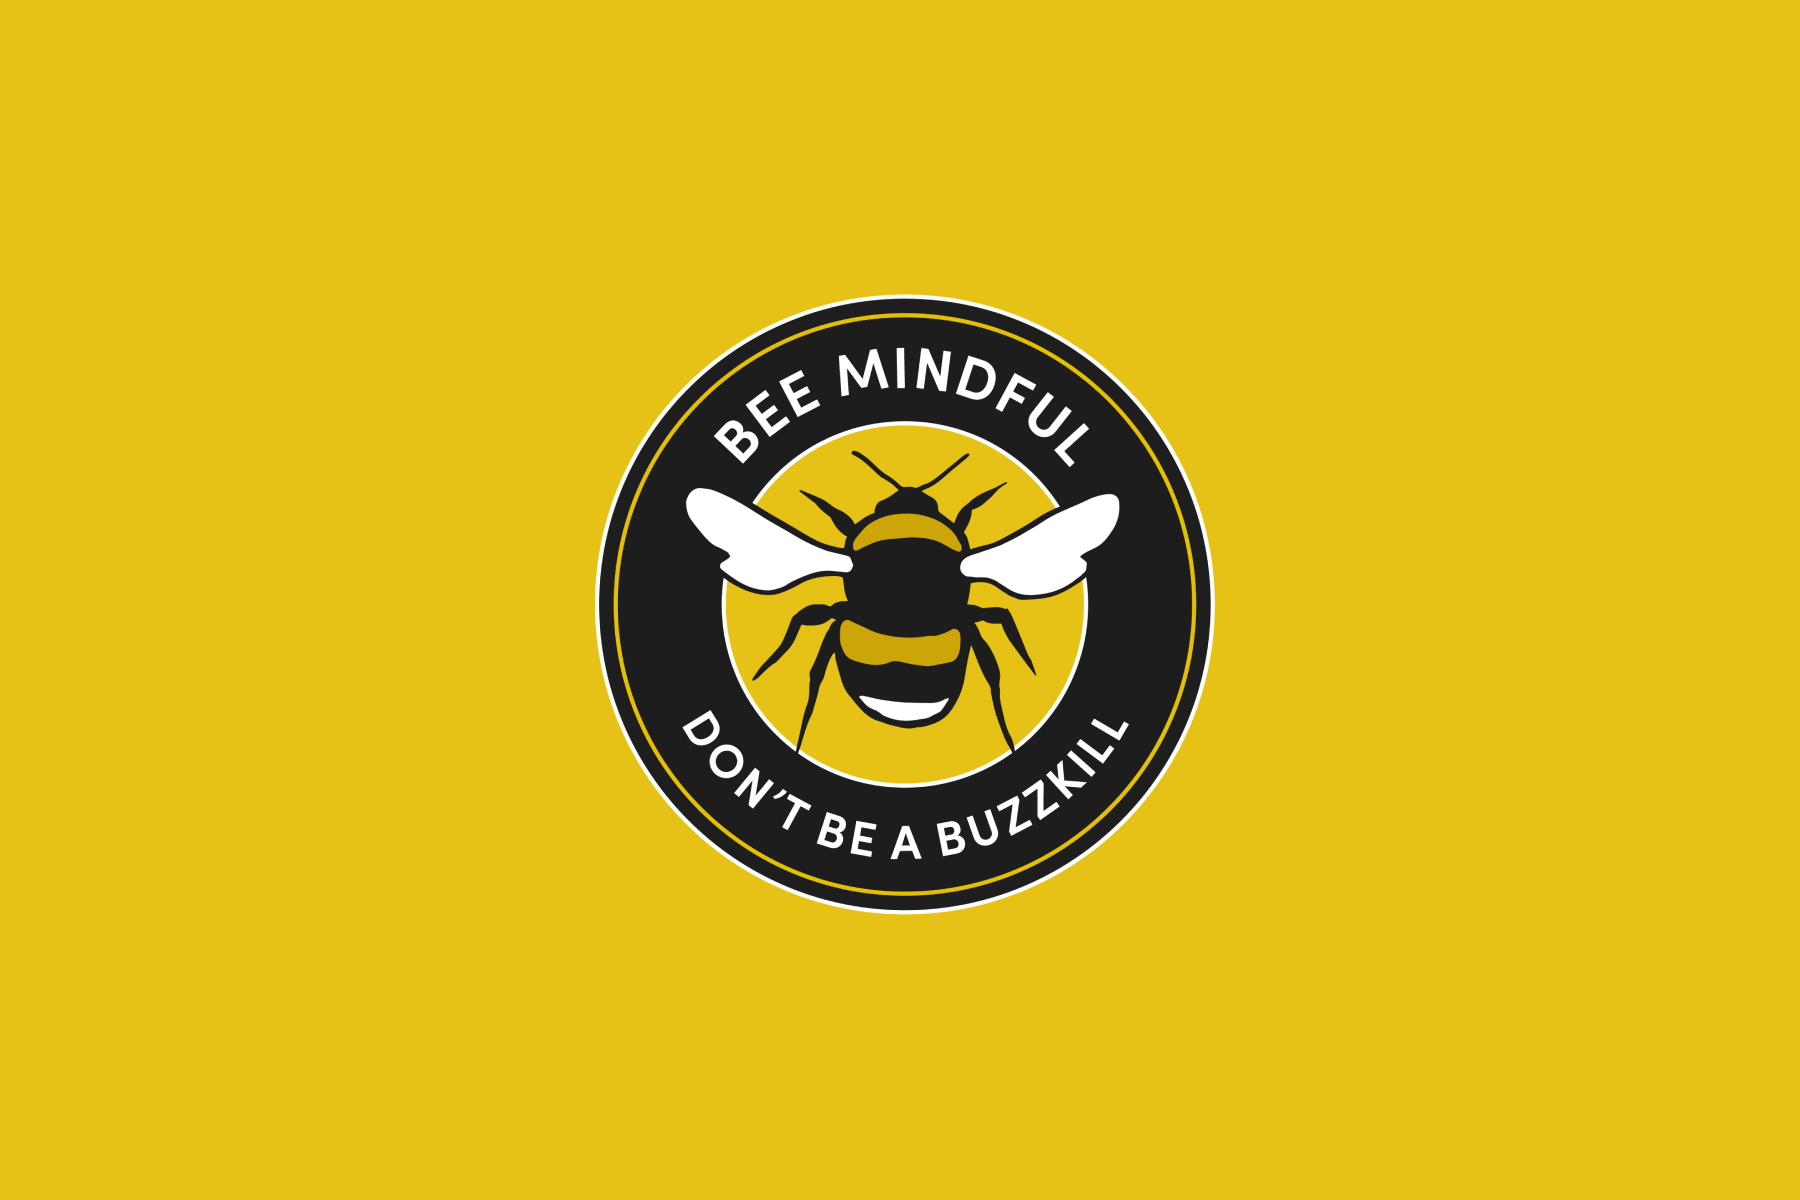 Don't be a Buzzkill